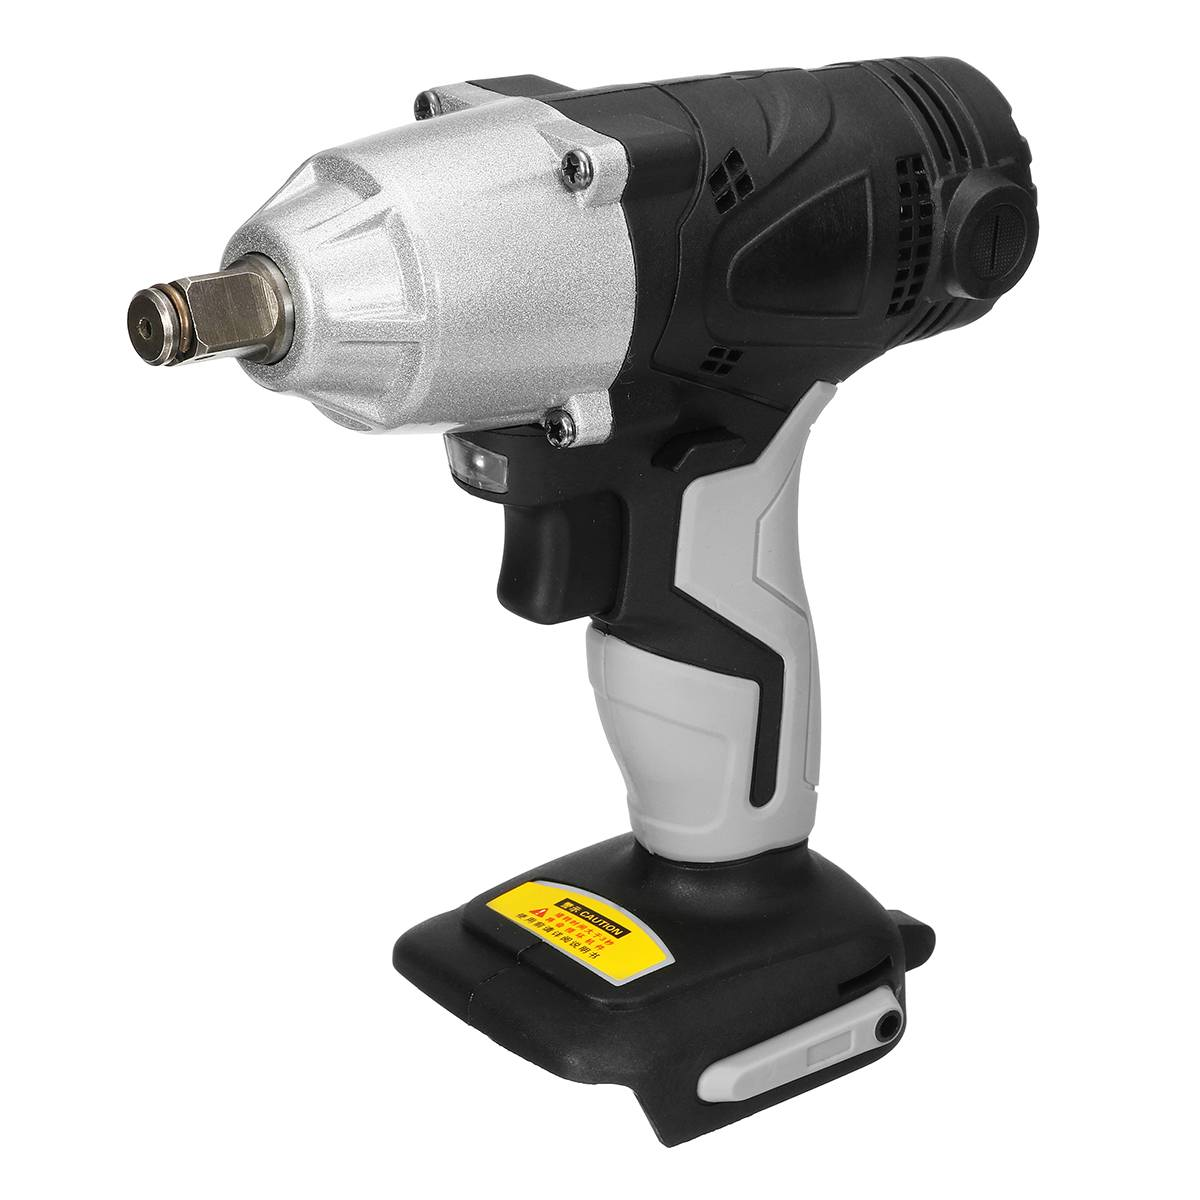 480Nm 3600rpm Li-Ion Cordless Impact Wrench 1/2 Electric Wrench Replacement Wrench Power Tool Without Battery Accessories